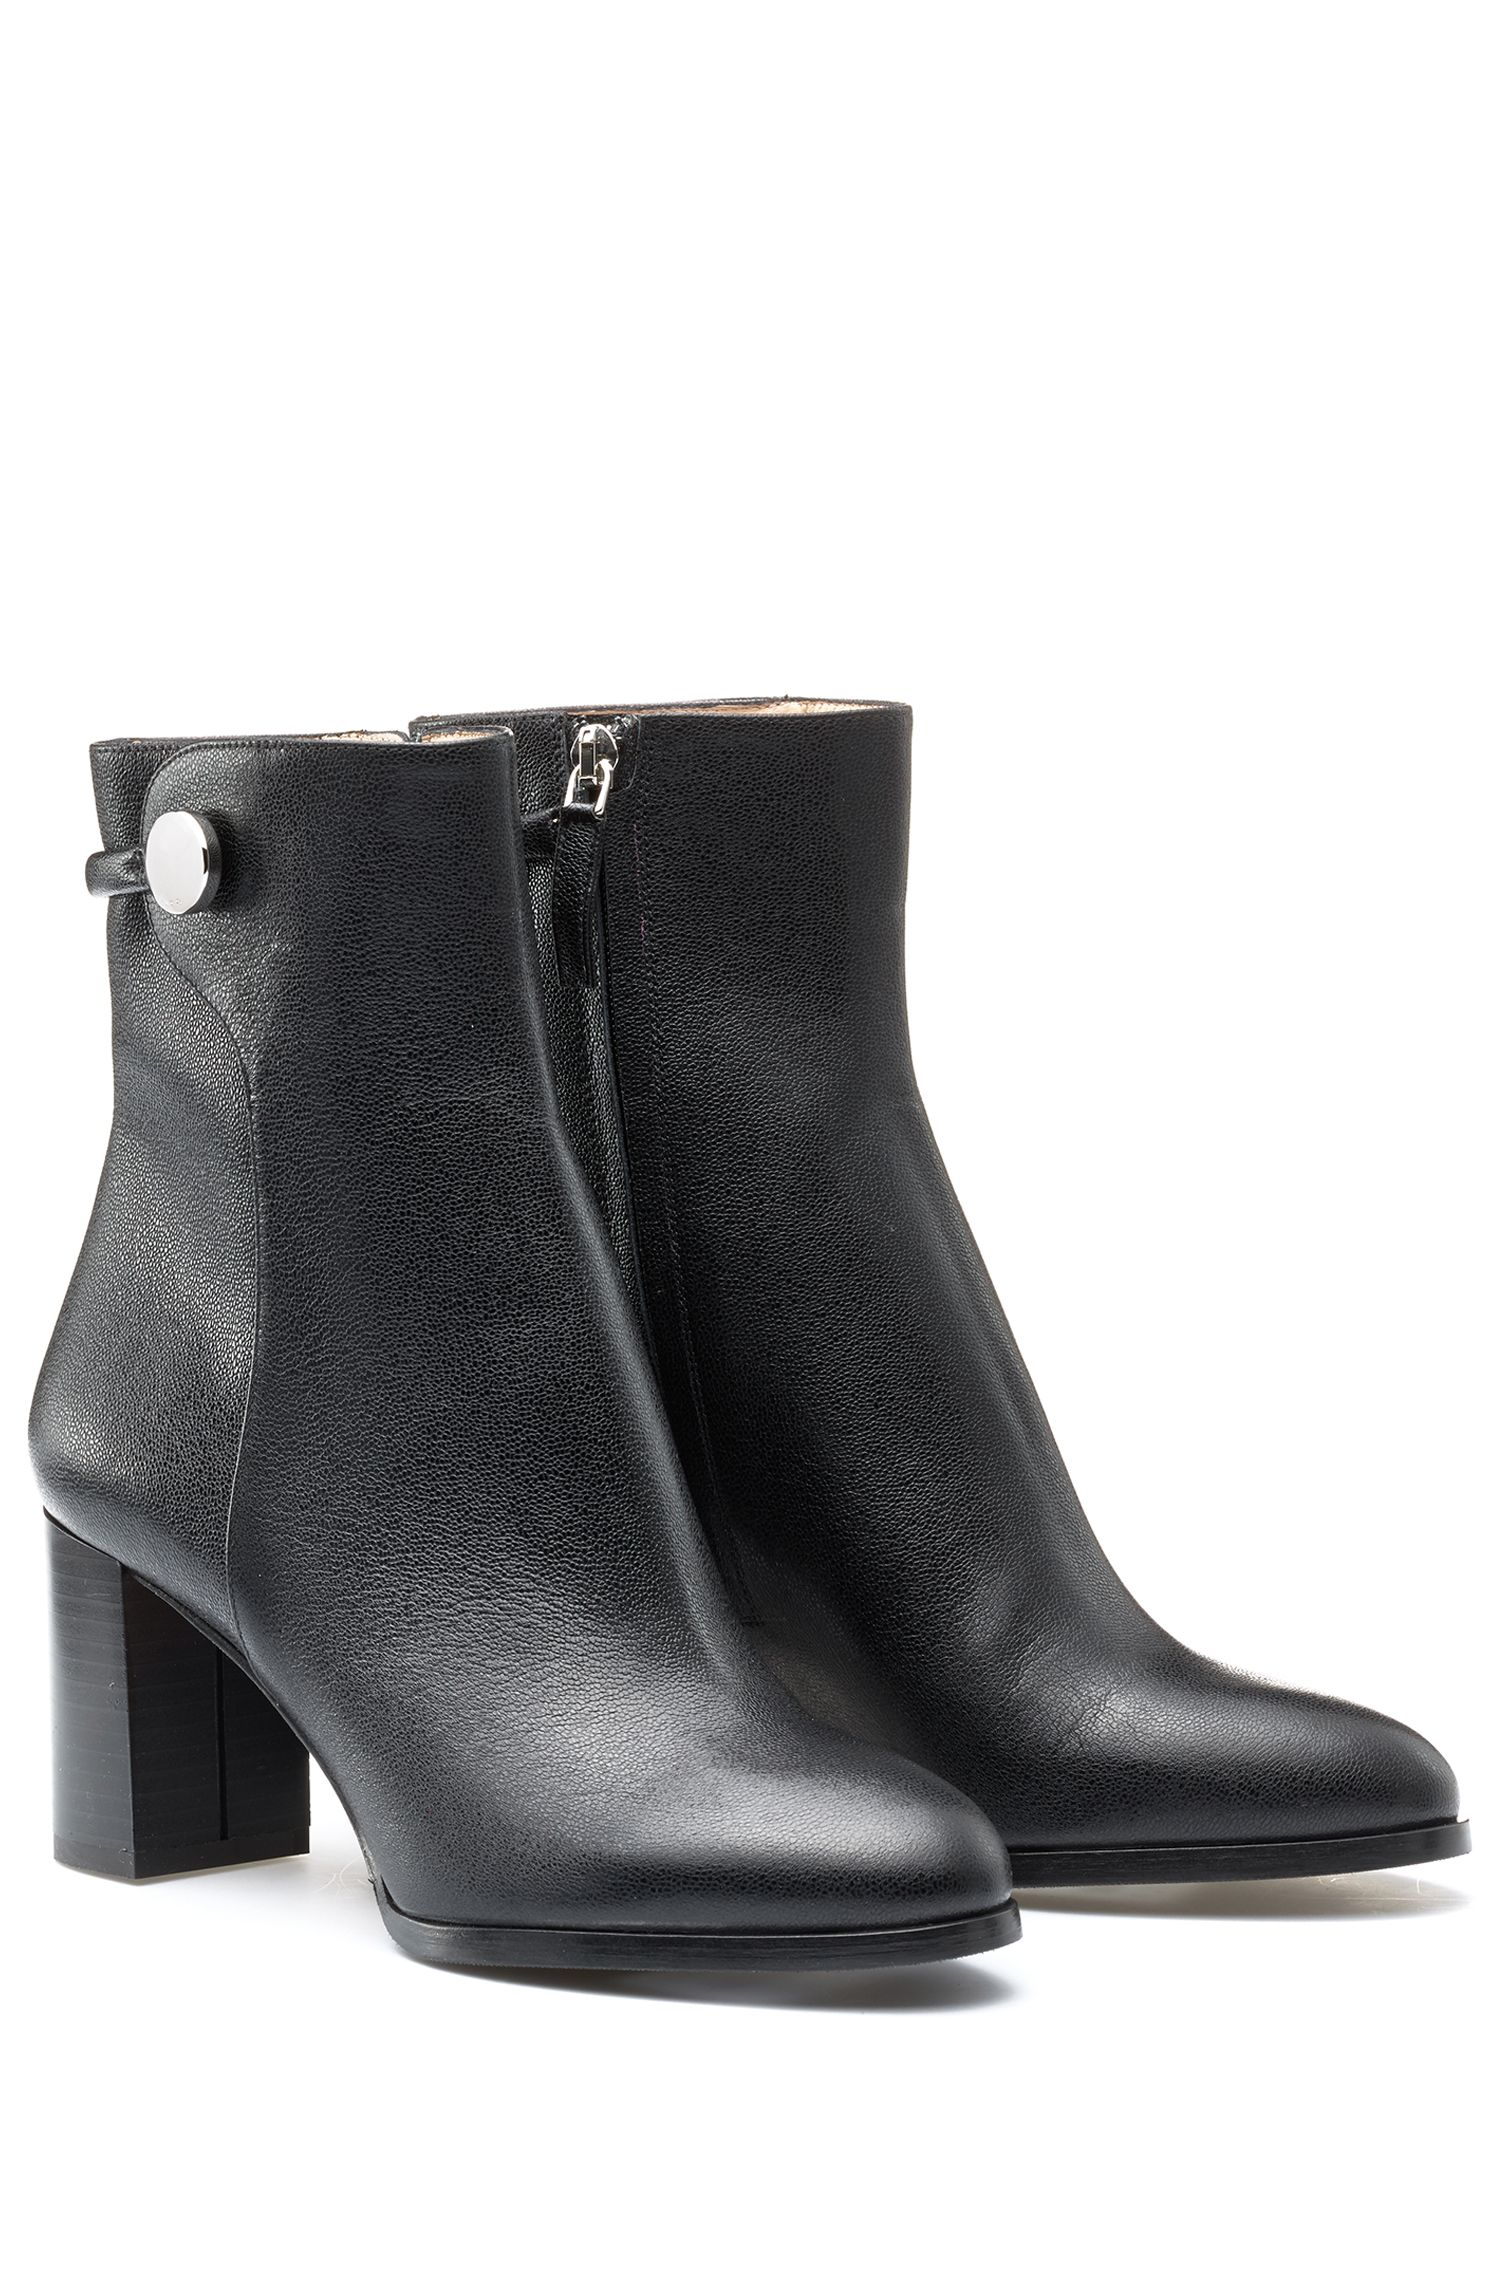 HUGO BOSS Bottines mi-hautes en cuir italien grainé